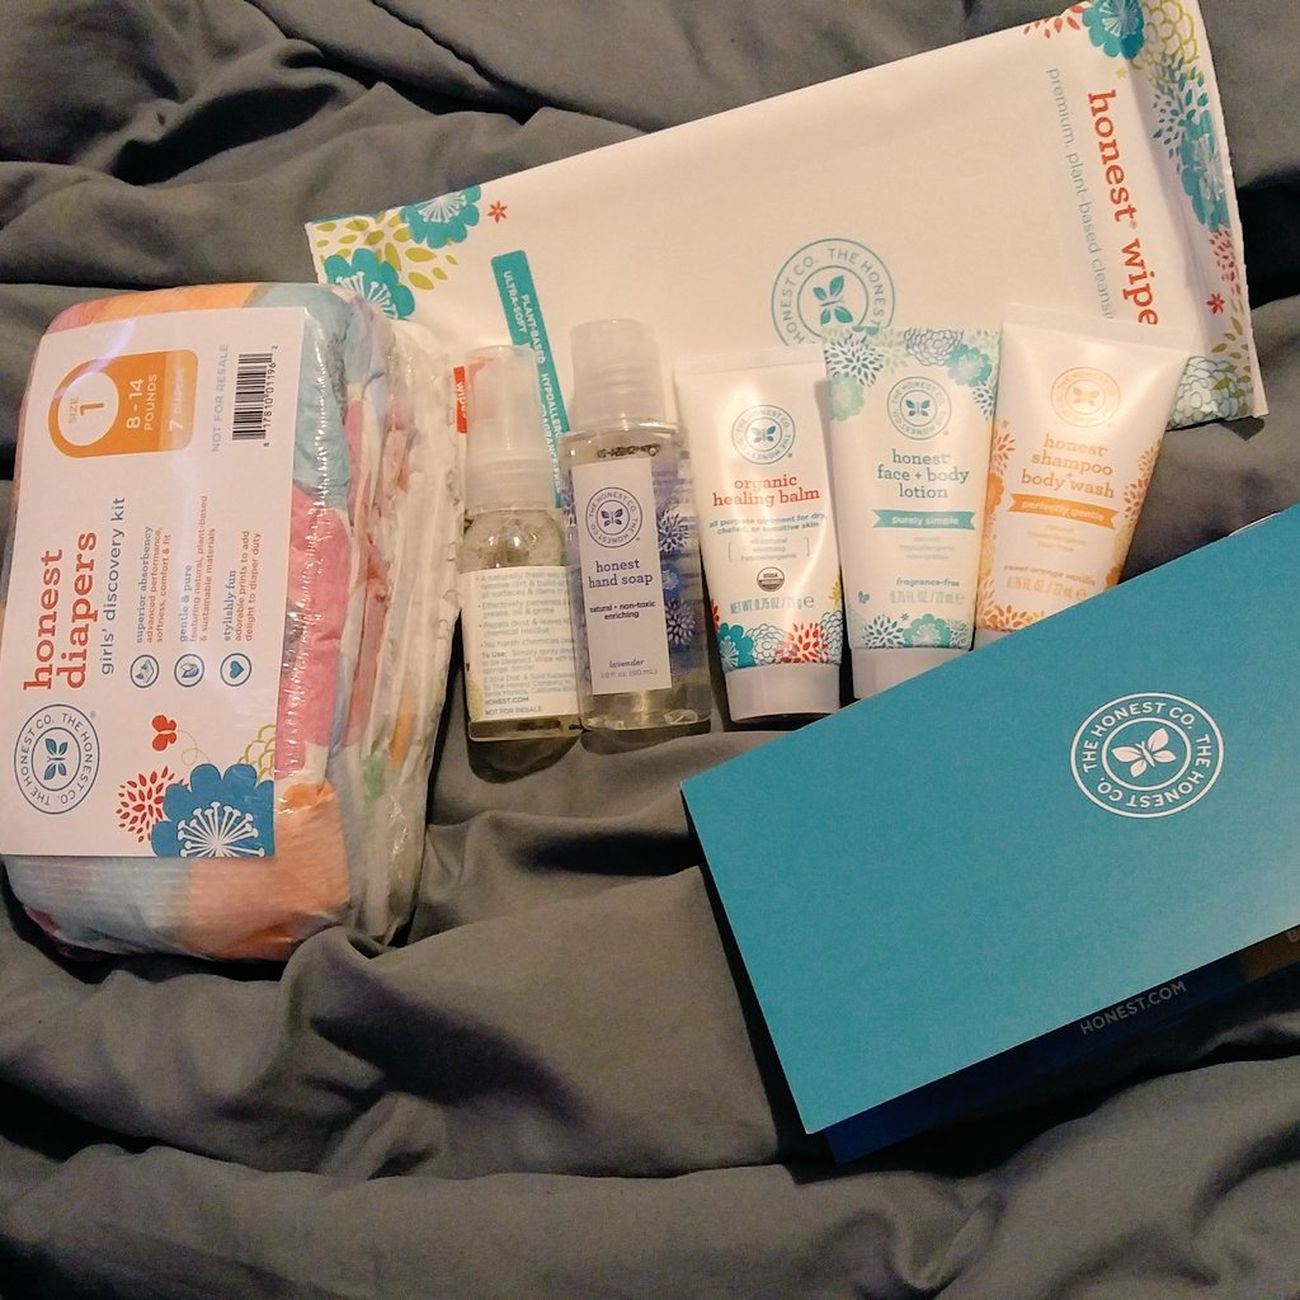 Soo happy my trial kit from The Honest Company arrived today! 😍 natural, organic & clean diapers, wipes, baby products & more thats safe! Jessicaalba is awesome & so is Thehonestcompany! Perfect Popular Photos Check This Out Likes New Hello World Profile Love Taking Photos Allnatural Babyproducts